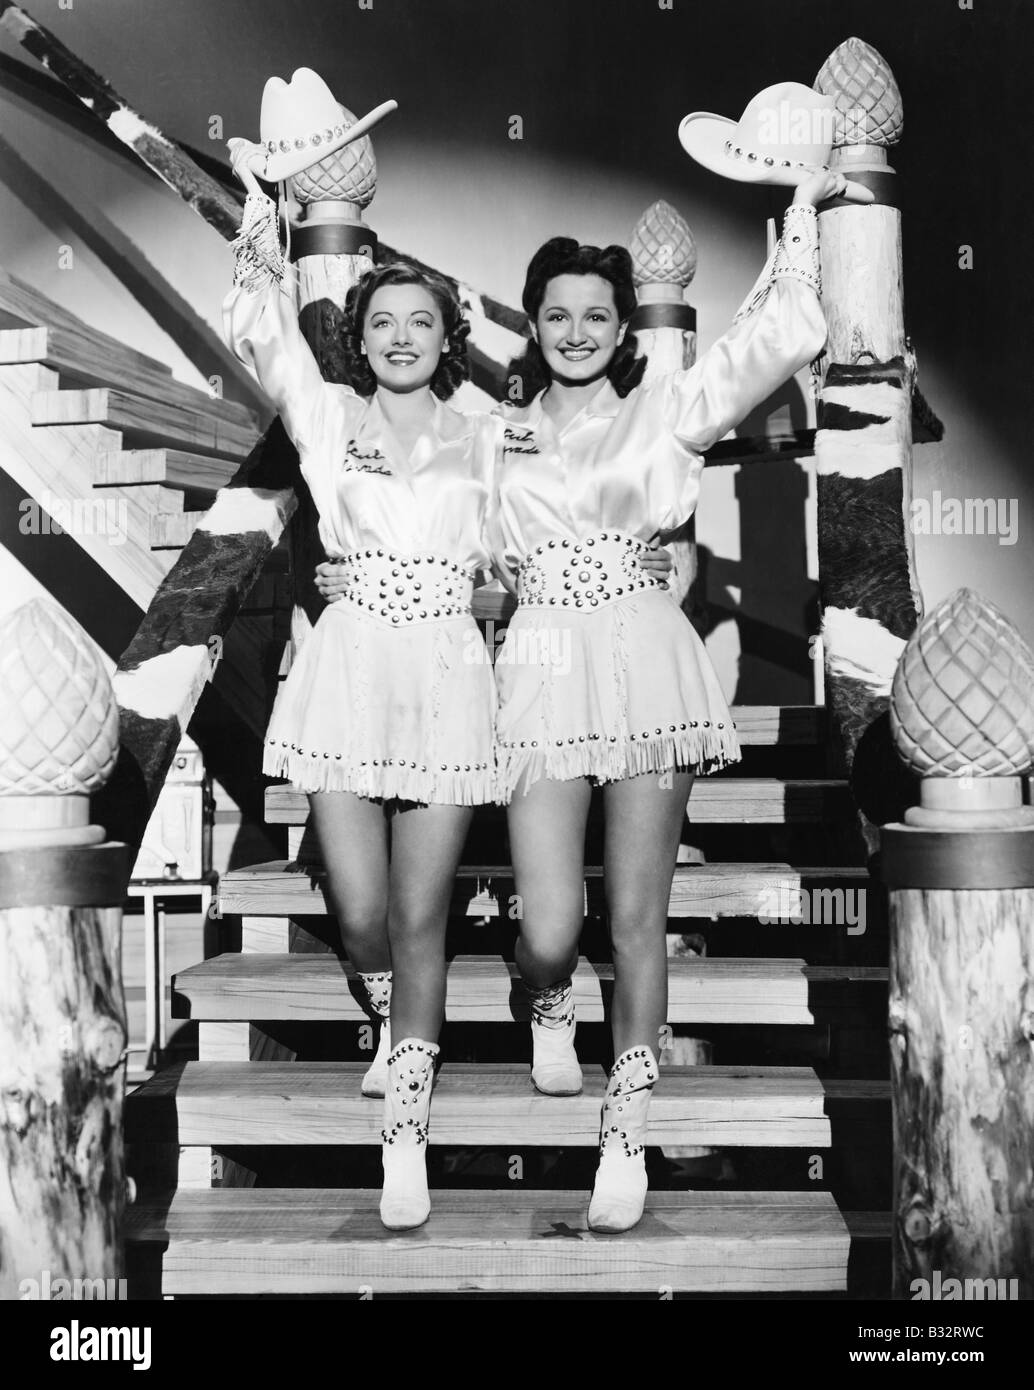 Two young women stepping down a staircase waving their western hats - Stock Image